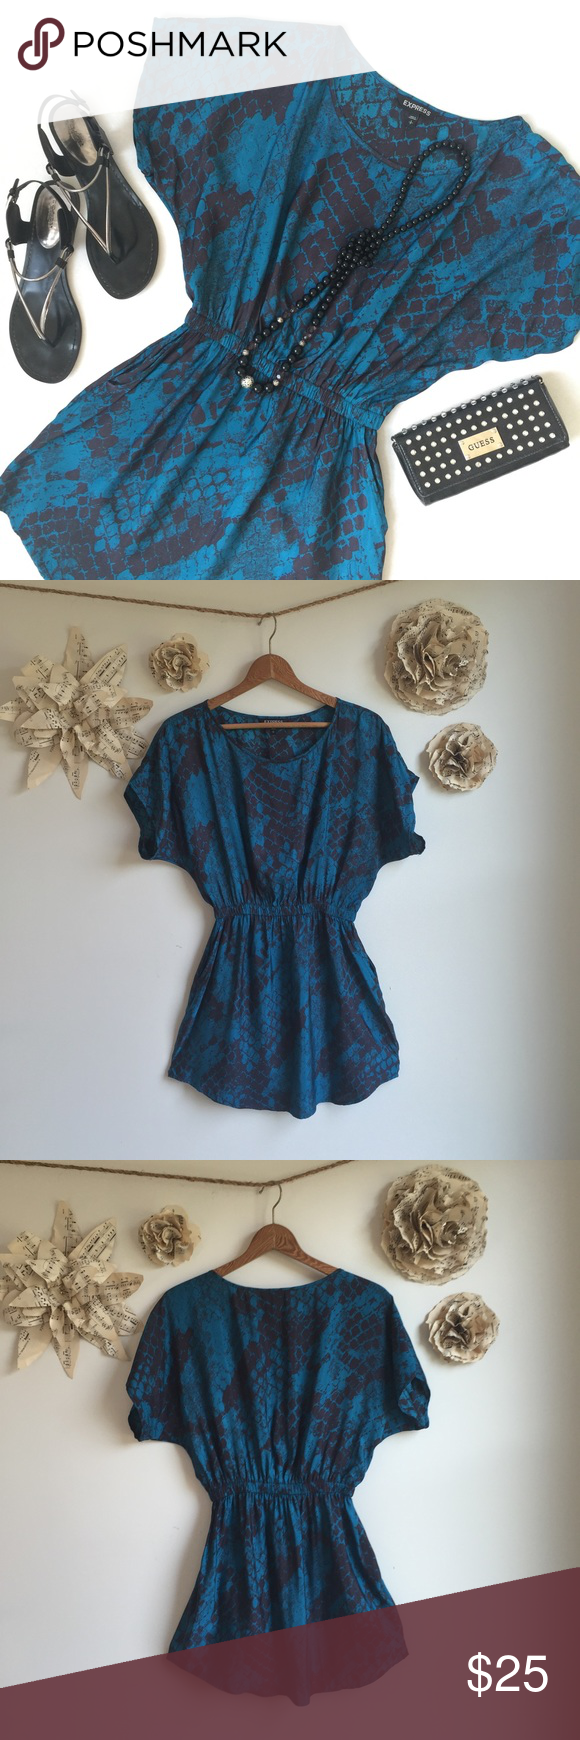 Express Reptile Print Dress Beautiful blue reptile print dress from express. Silky feel and breezy. Elastic waist and front pockets. Great for a night out on the town. Just needs some sexy black heels. Length 34in. 100% Polyester. Perfect condition! Express Dresses